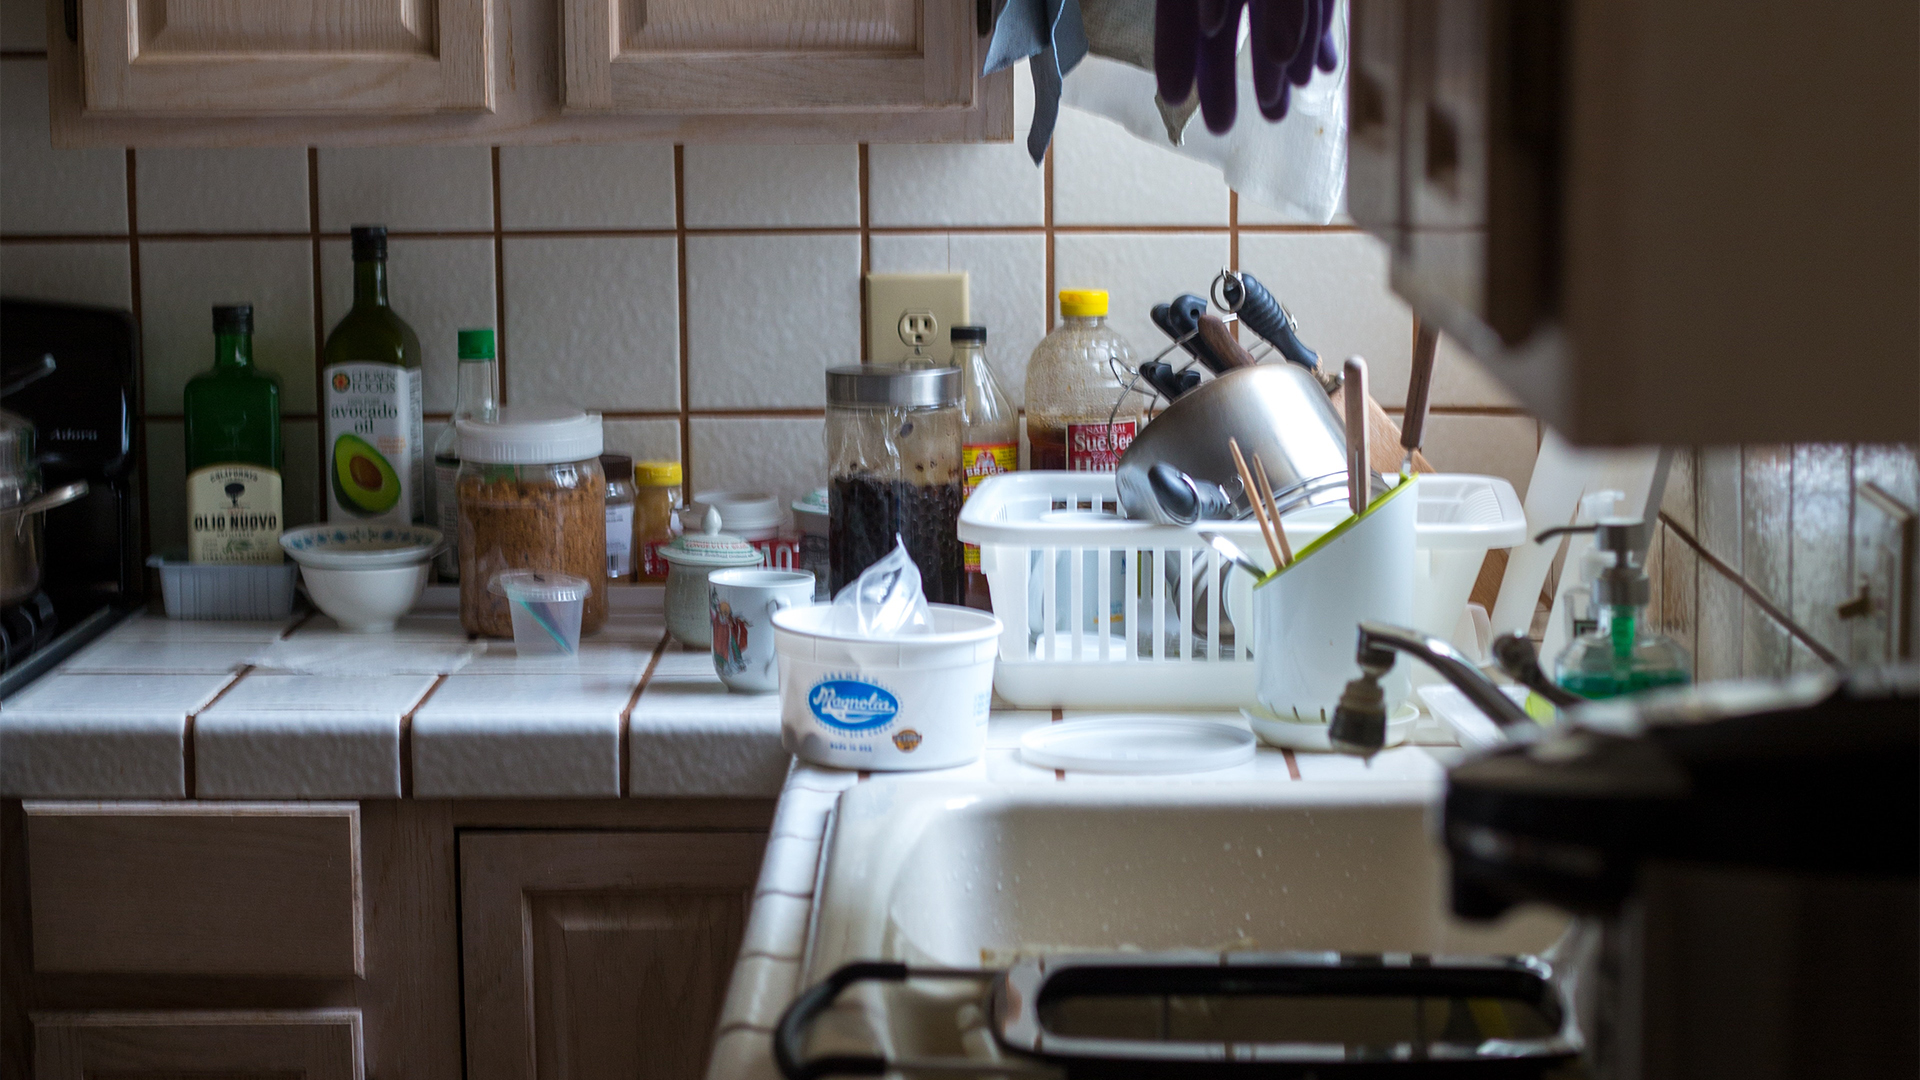 """Why the kitchen? - Cooking can be overwhelming and complicated for disabled people. It is safe to say that everyone wants to eat great food and maybe even make it with the best kitchen products. Unfortunately, most """"accessible"""" kitchen tools fail to understand their disabled users and therefore make cooking a daunting task."""